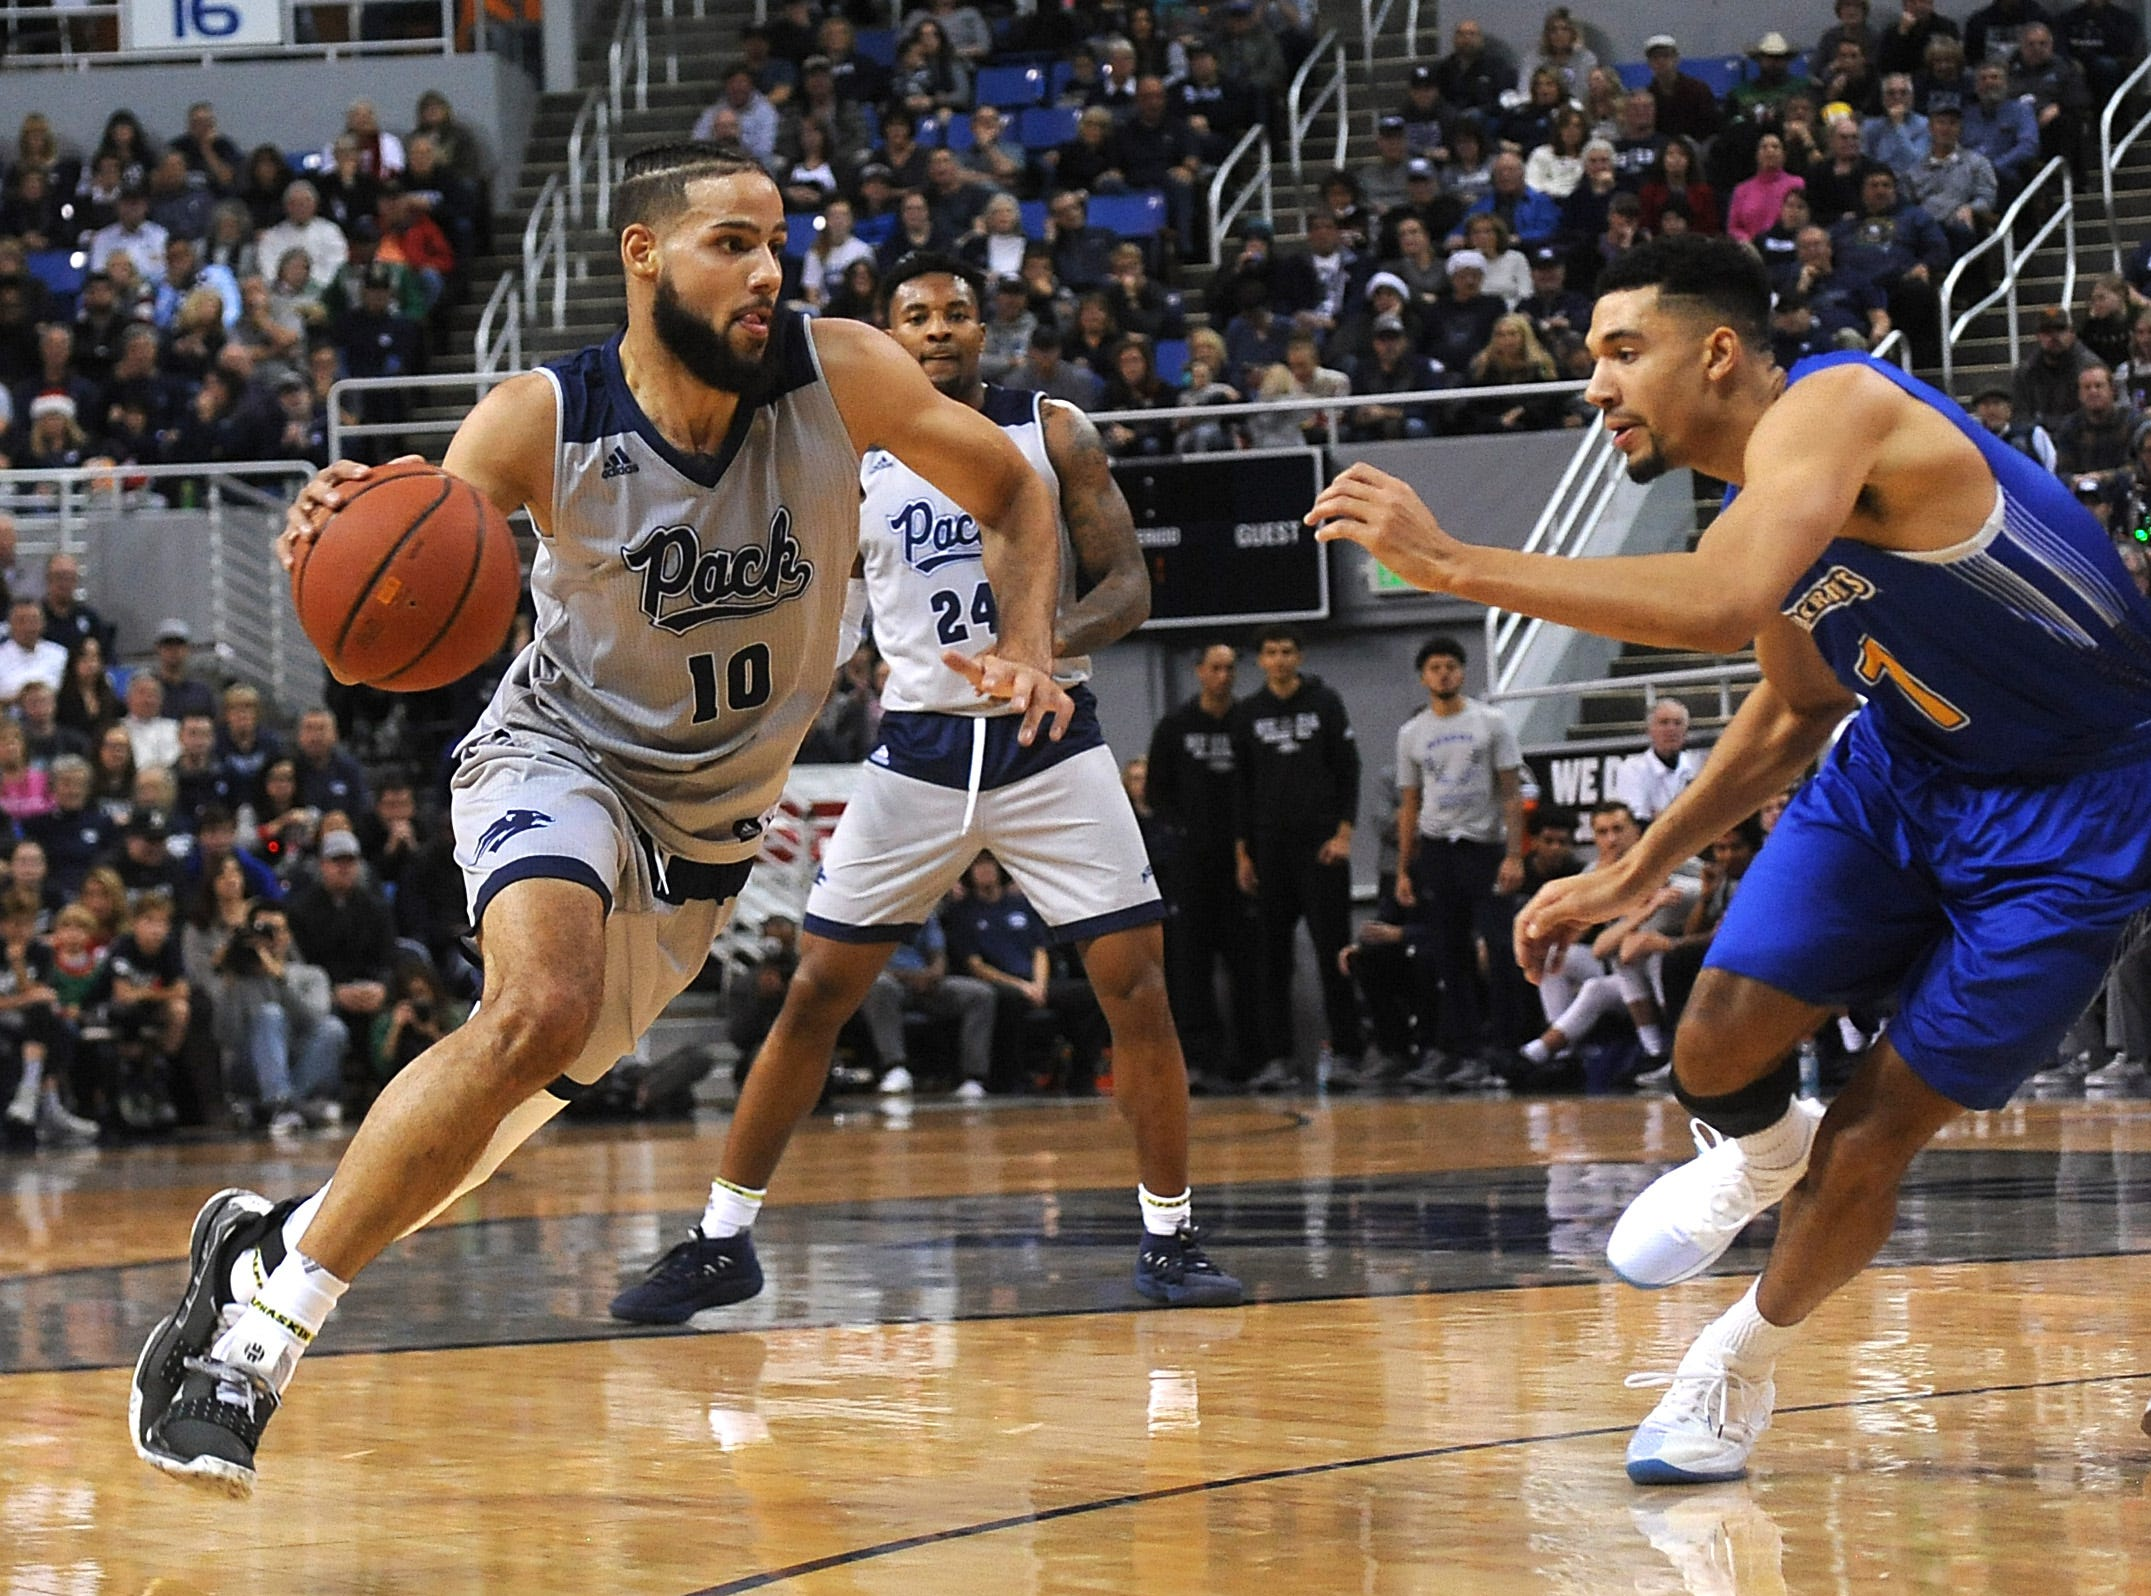 Nevada's Caleb Martin (10) brings the ball up court while taking on South Dakota State during their basketball game at Lawlor Events Center in Reno on Dec. 15, 2018.